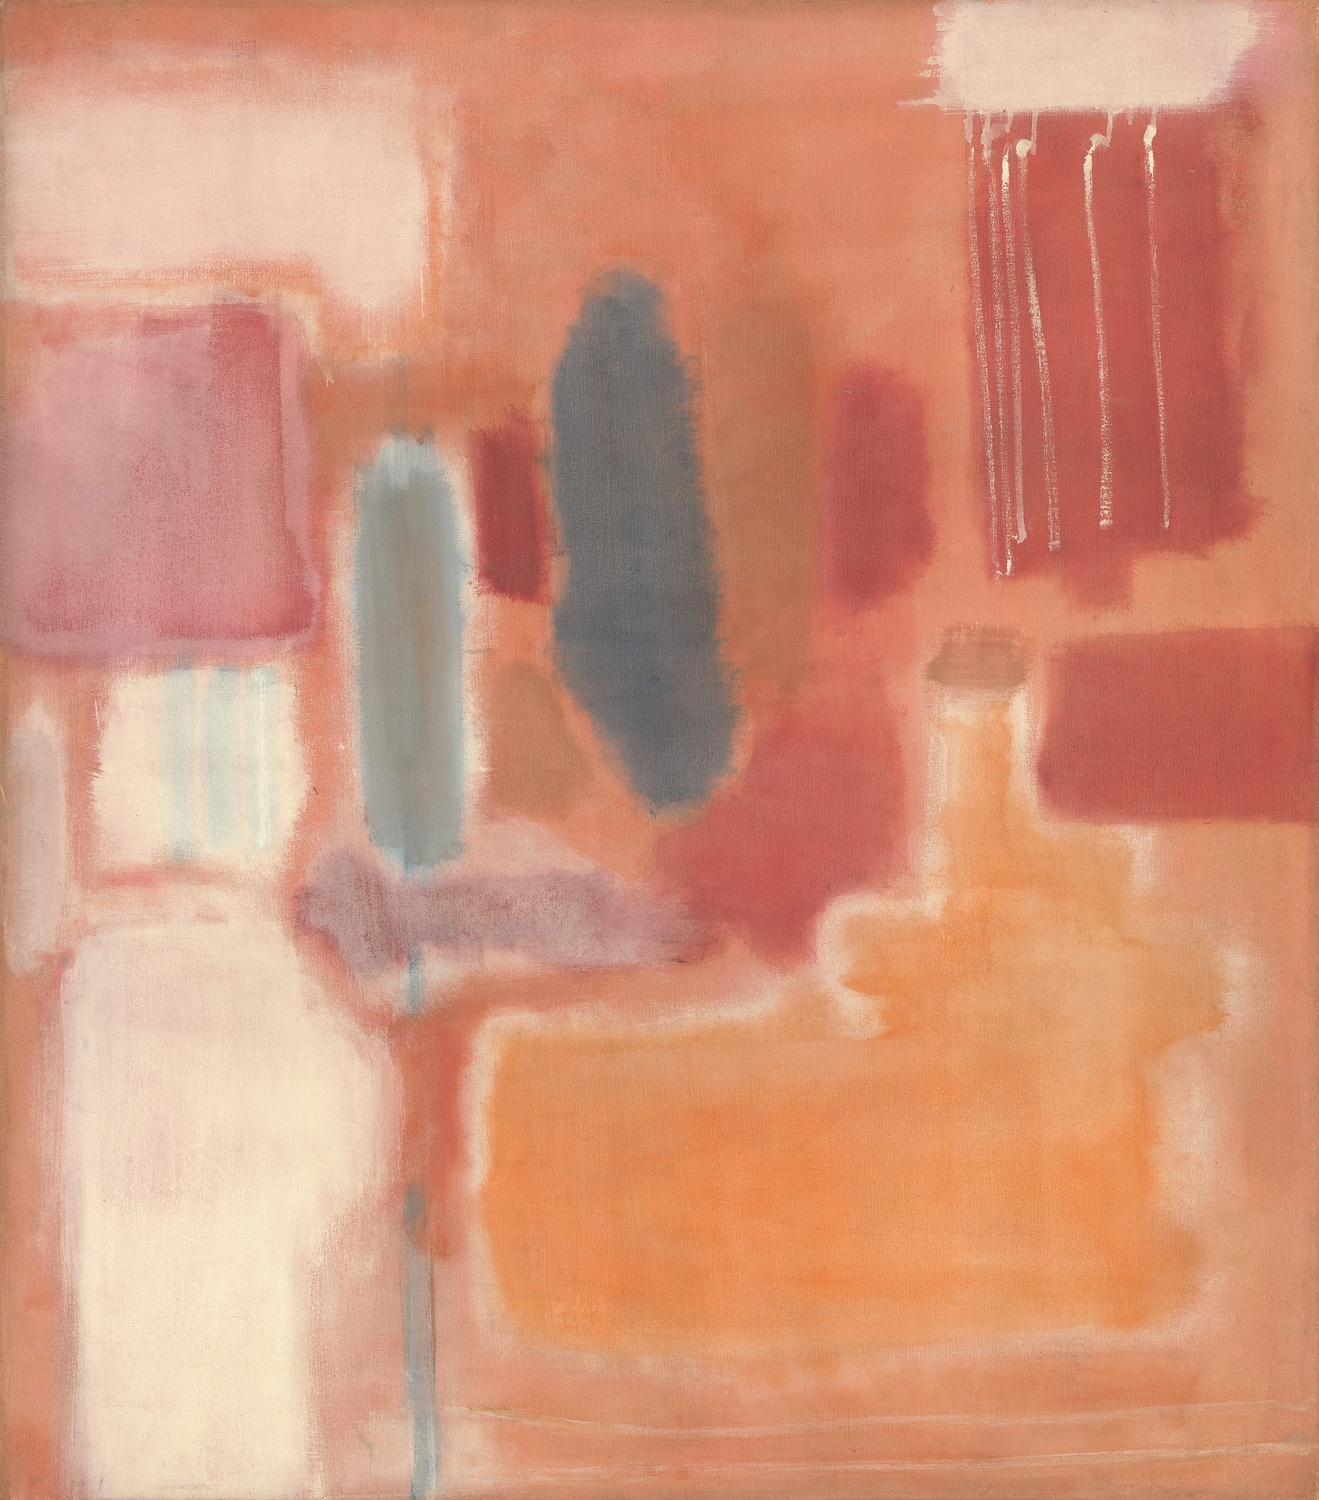 Mark Rothko, No. 9 (1948). Oil and mixed media on canvas, overall: 134.7 x 118.4 cm. National Gallery of Art, Washington.